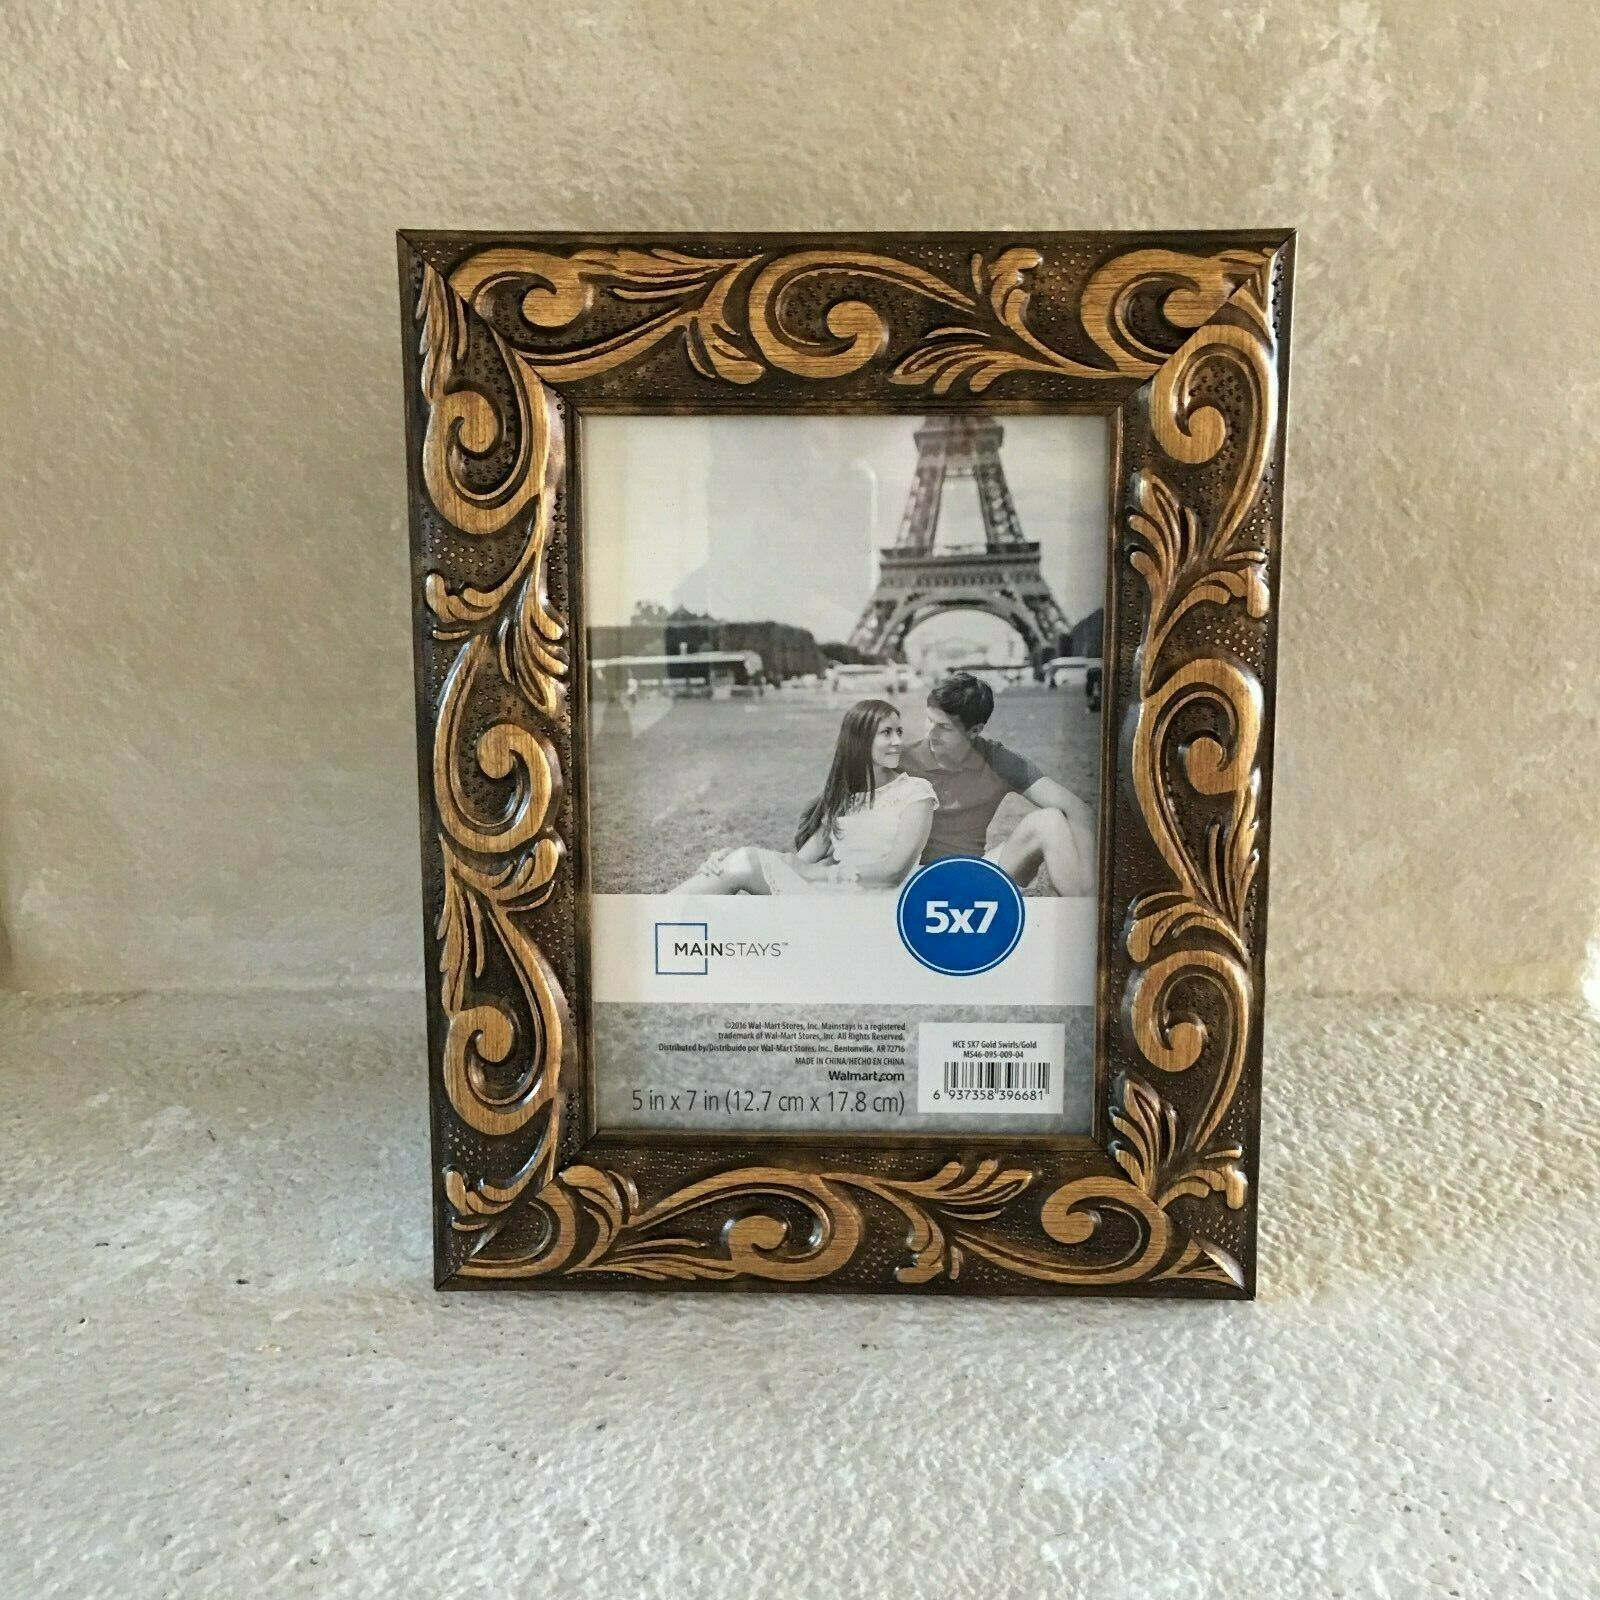 "MAINSTAYS 7.75"" x 10"" Plastic PICTURE FRAME 5"" x 7"" Photo GOLD+BROWN Table DECOR"